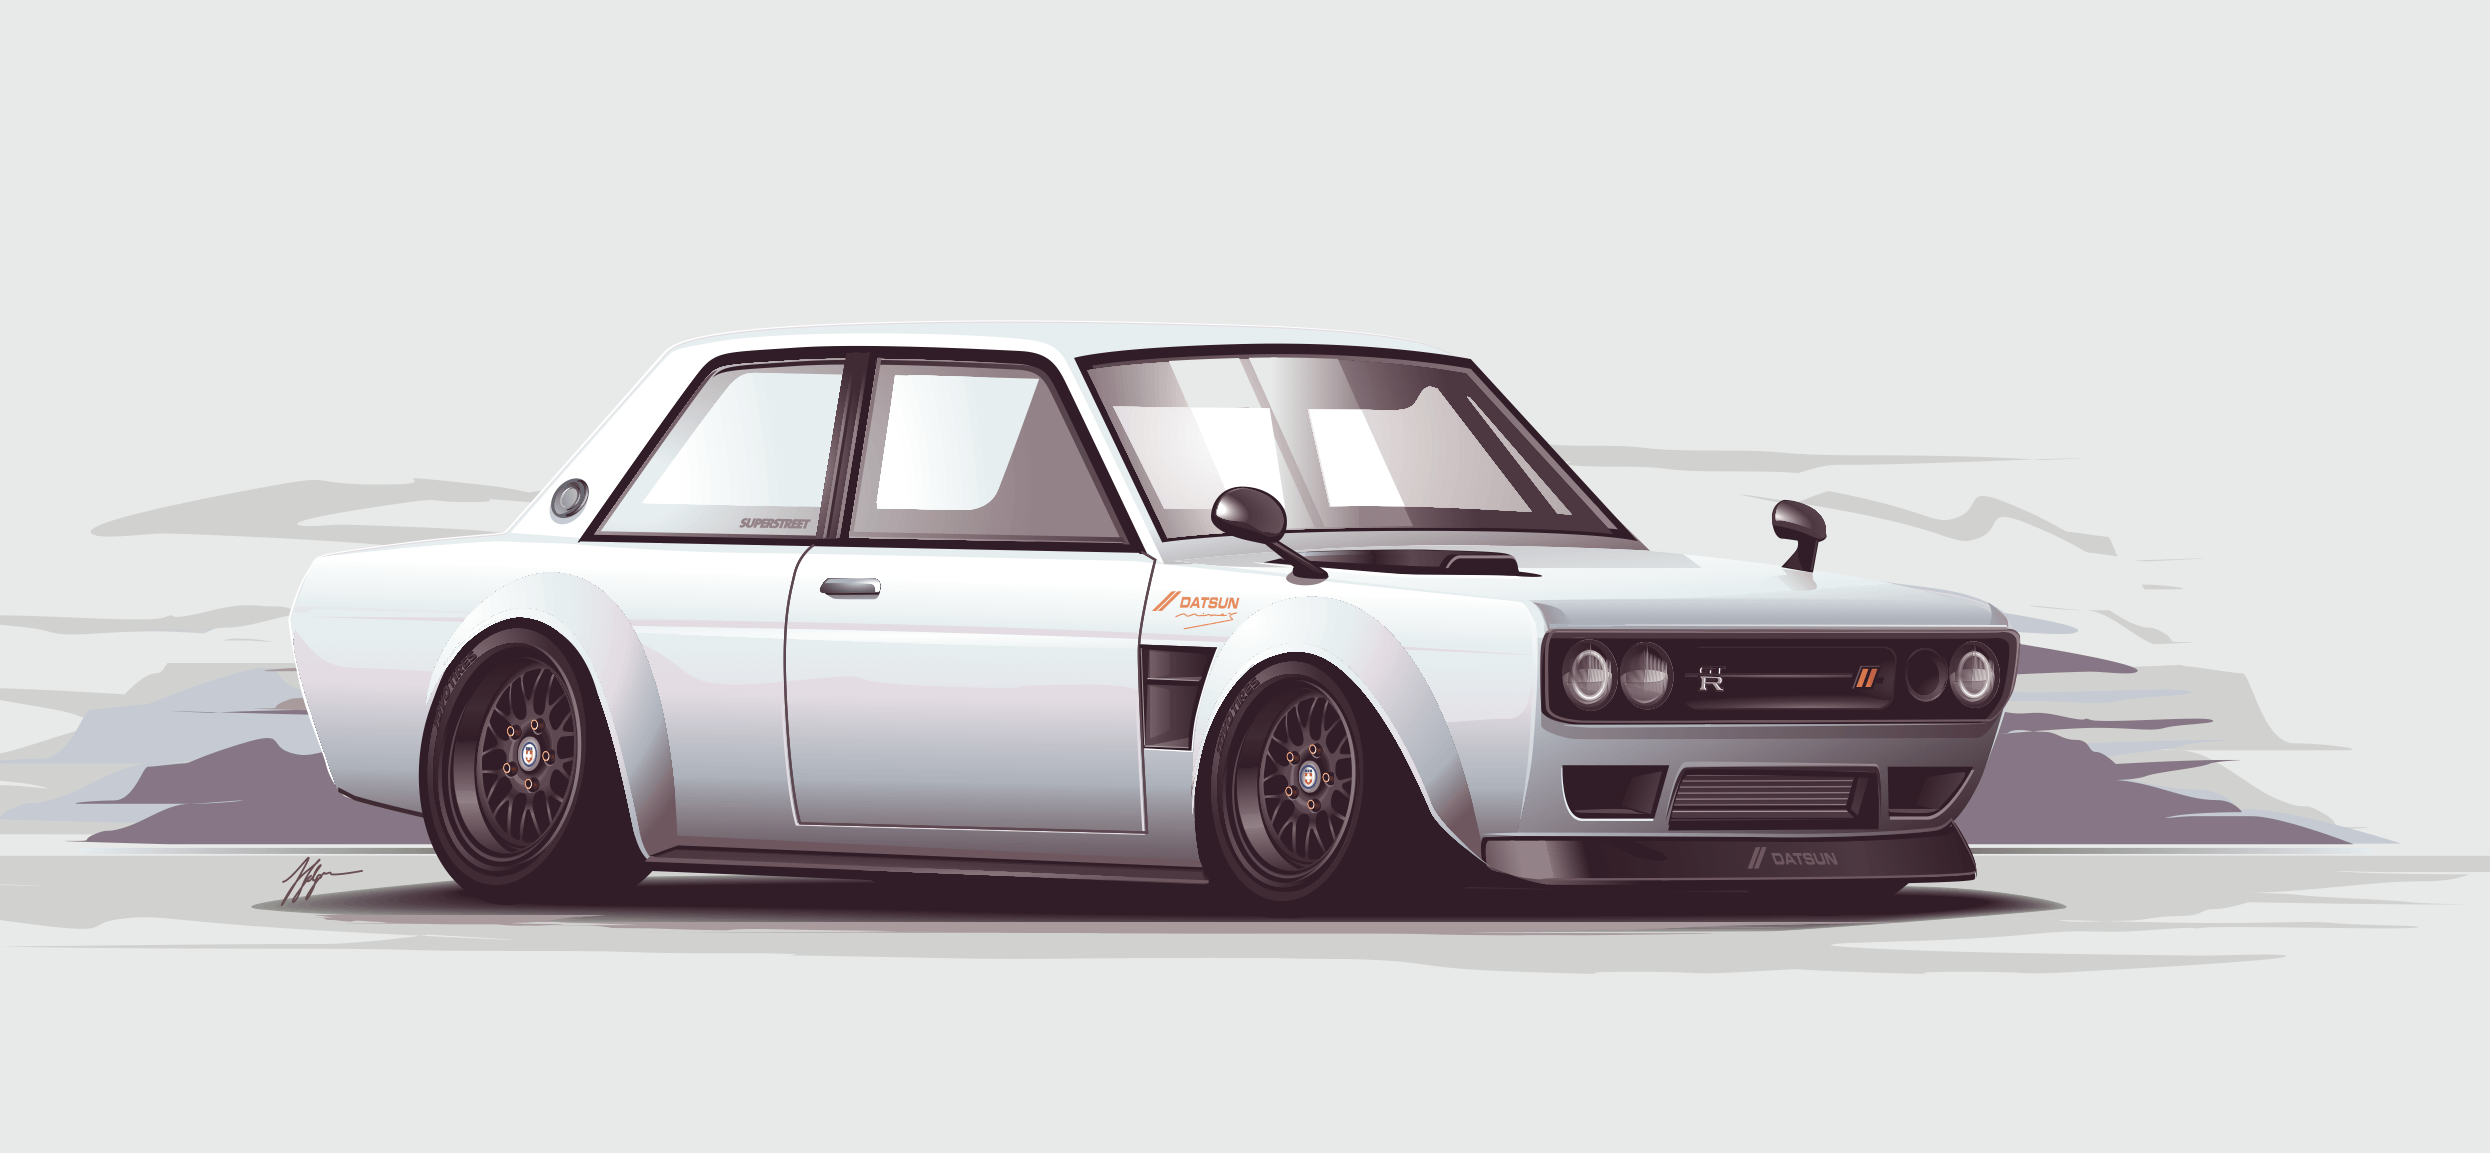 Datsun 510 Wallpapers 2490x1153